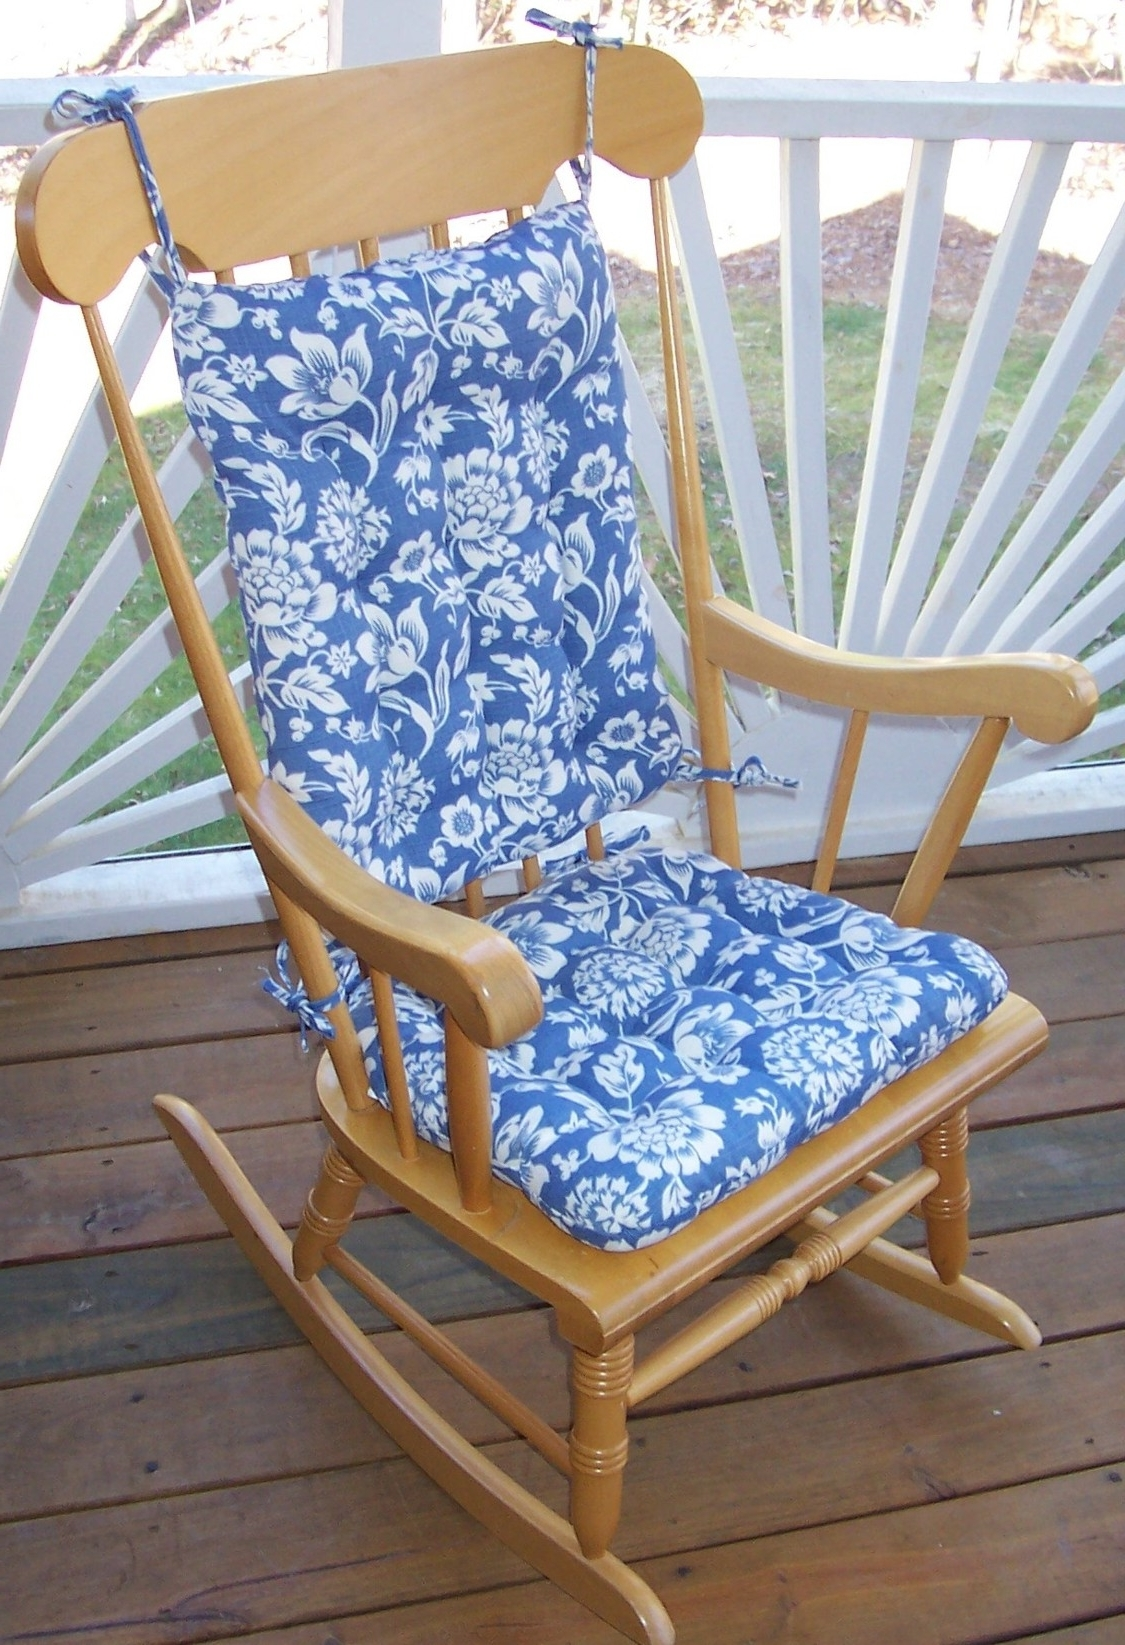 Widely Used Yellow Outdoor Rocking Chair Cushions – Chair Design Ideas Regarding Yellow Outdoor Rocking Chairs (View 14 of 20)